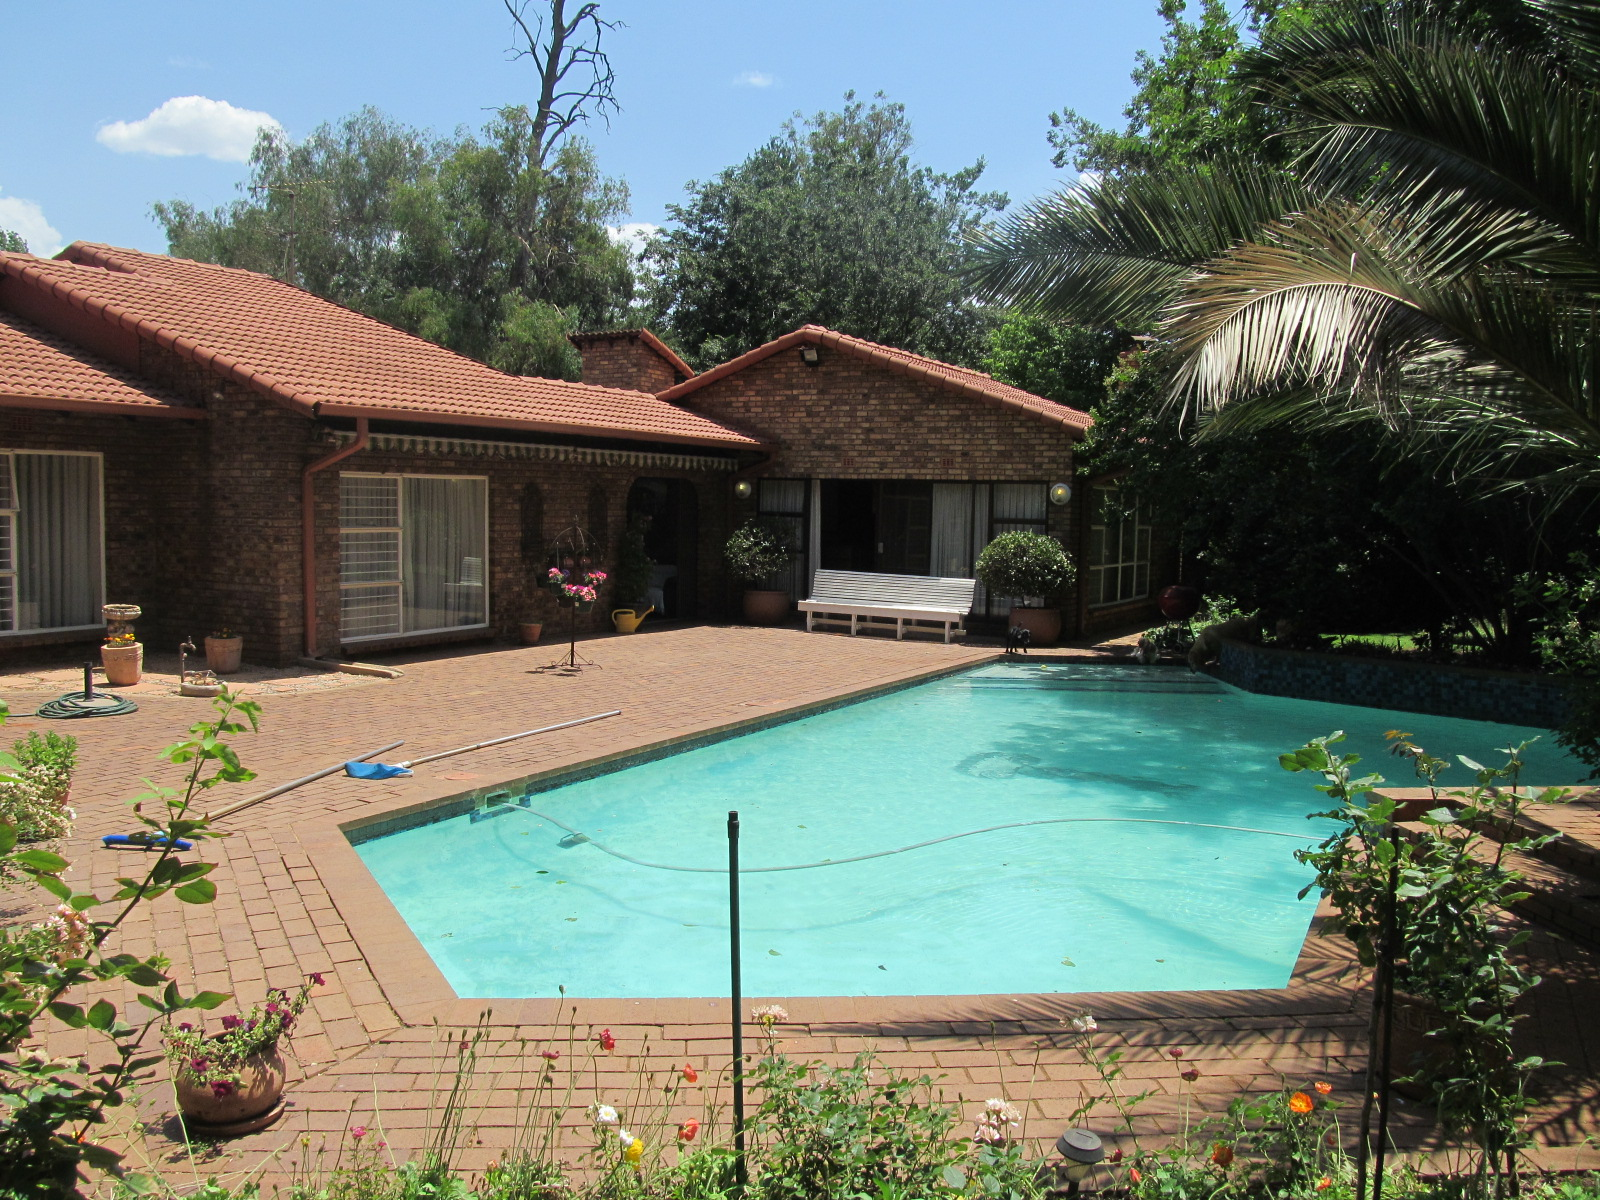 5 Bedroom House For Sale In Midvaal